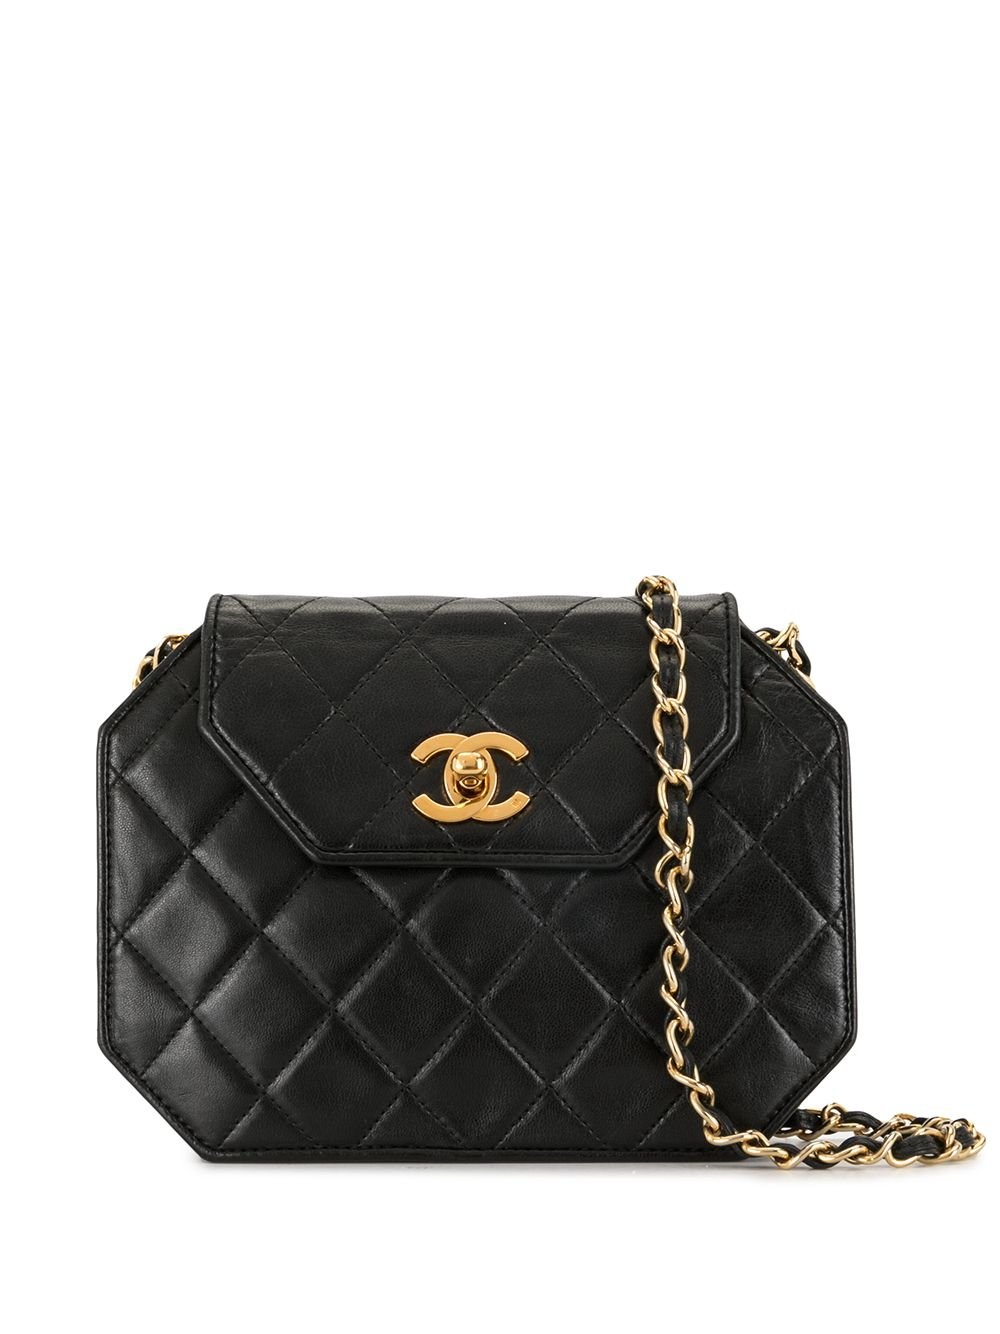 Chanel Pre-Owned 1990s diamond-quilted shoulder bag - Black